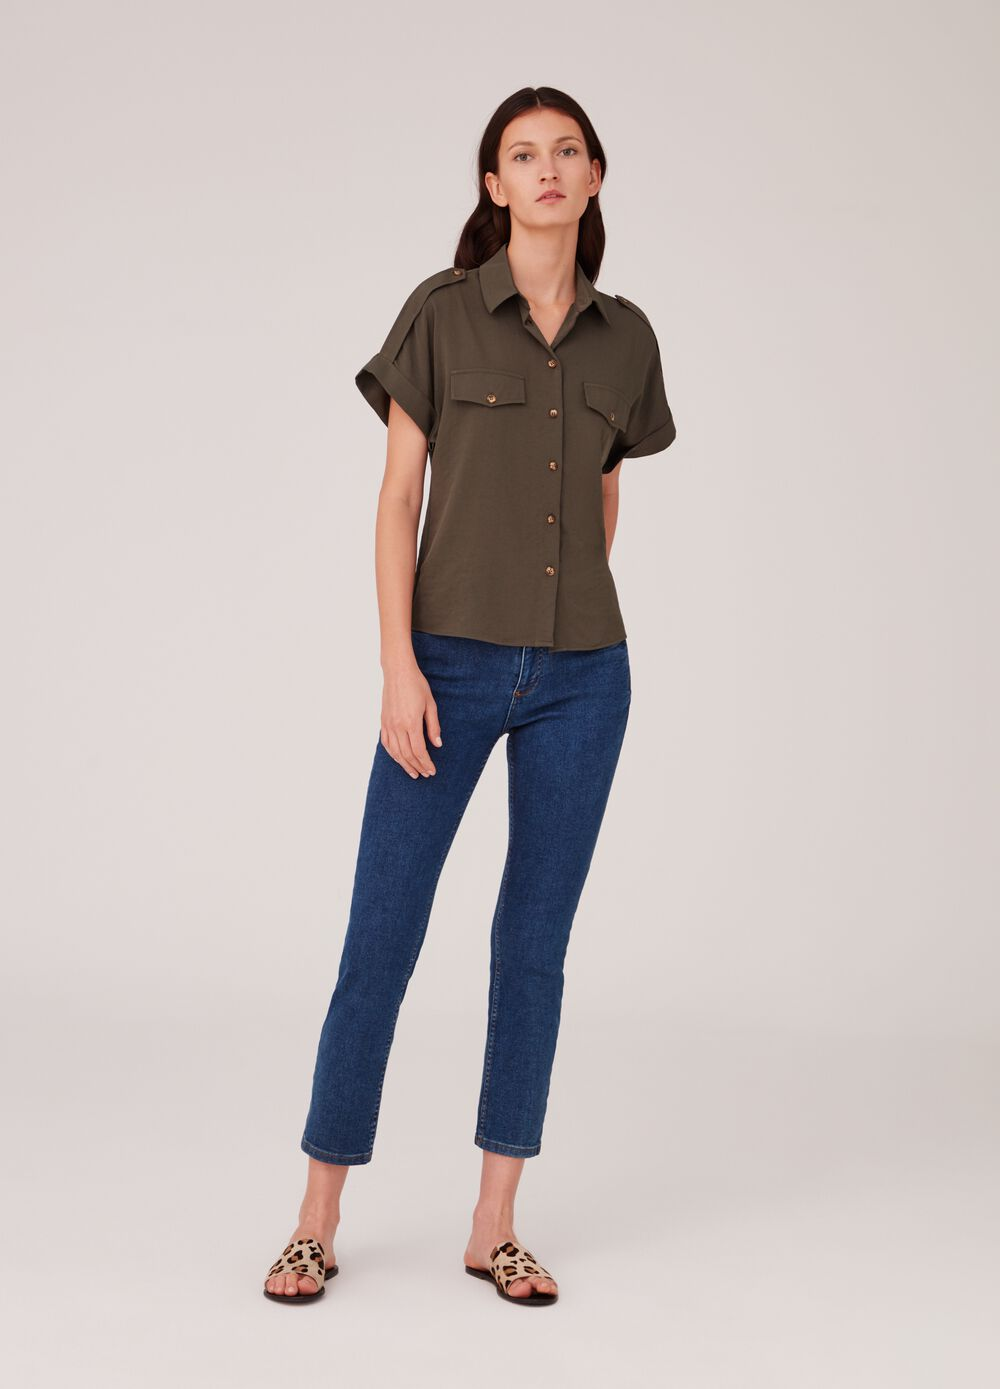 Shirt with short sleeves and false pockets